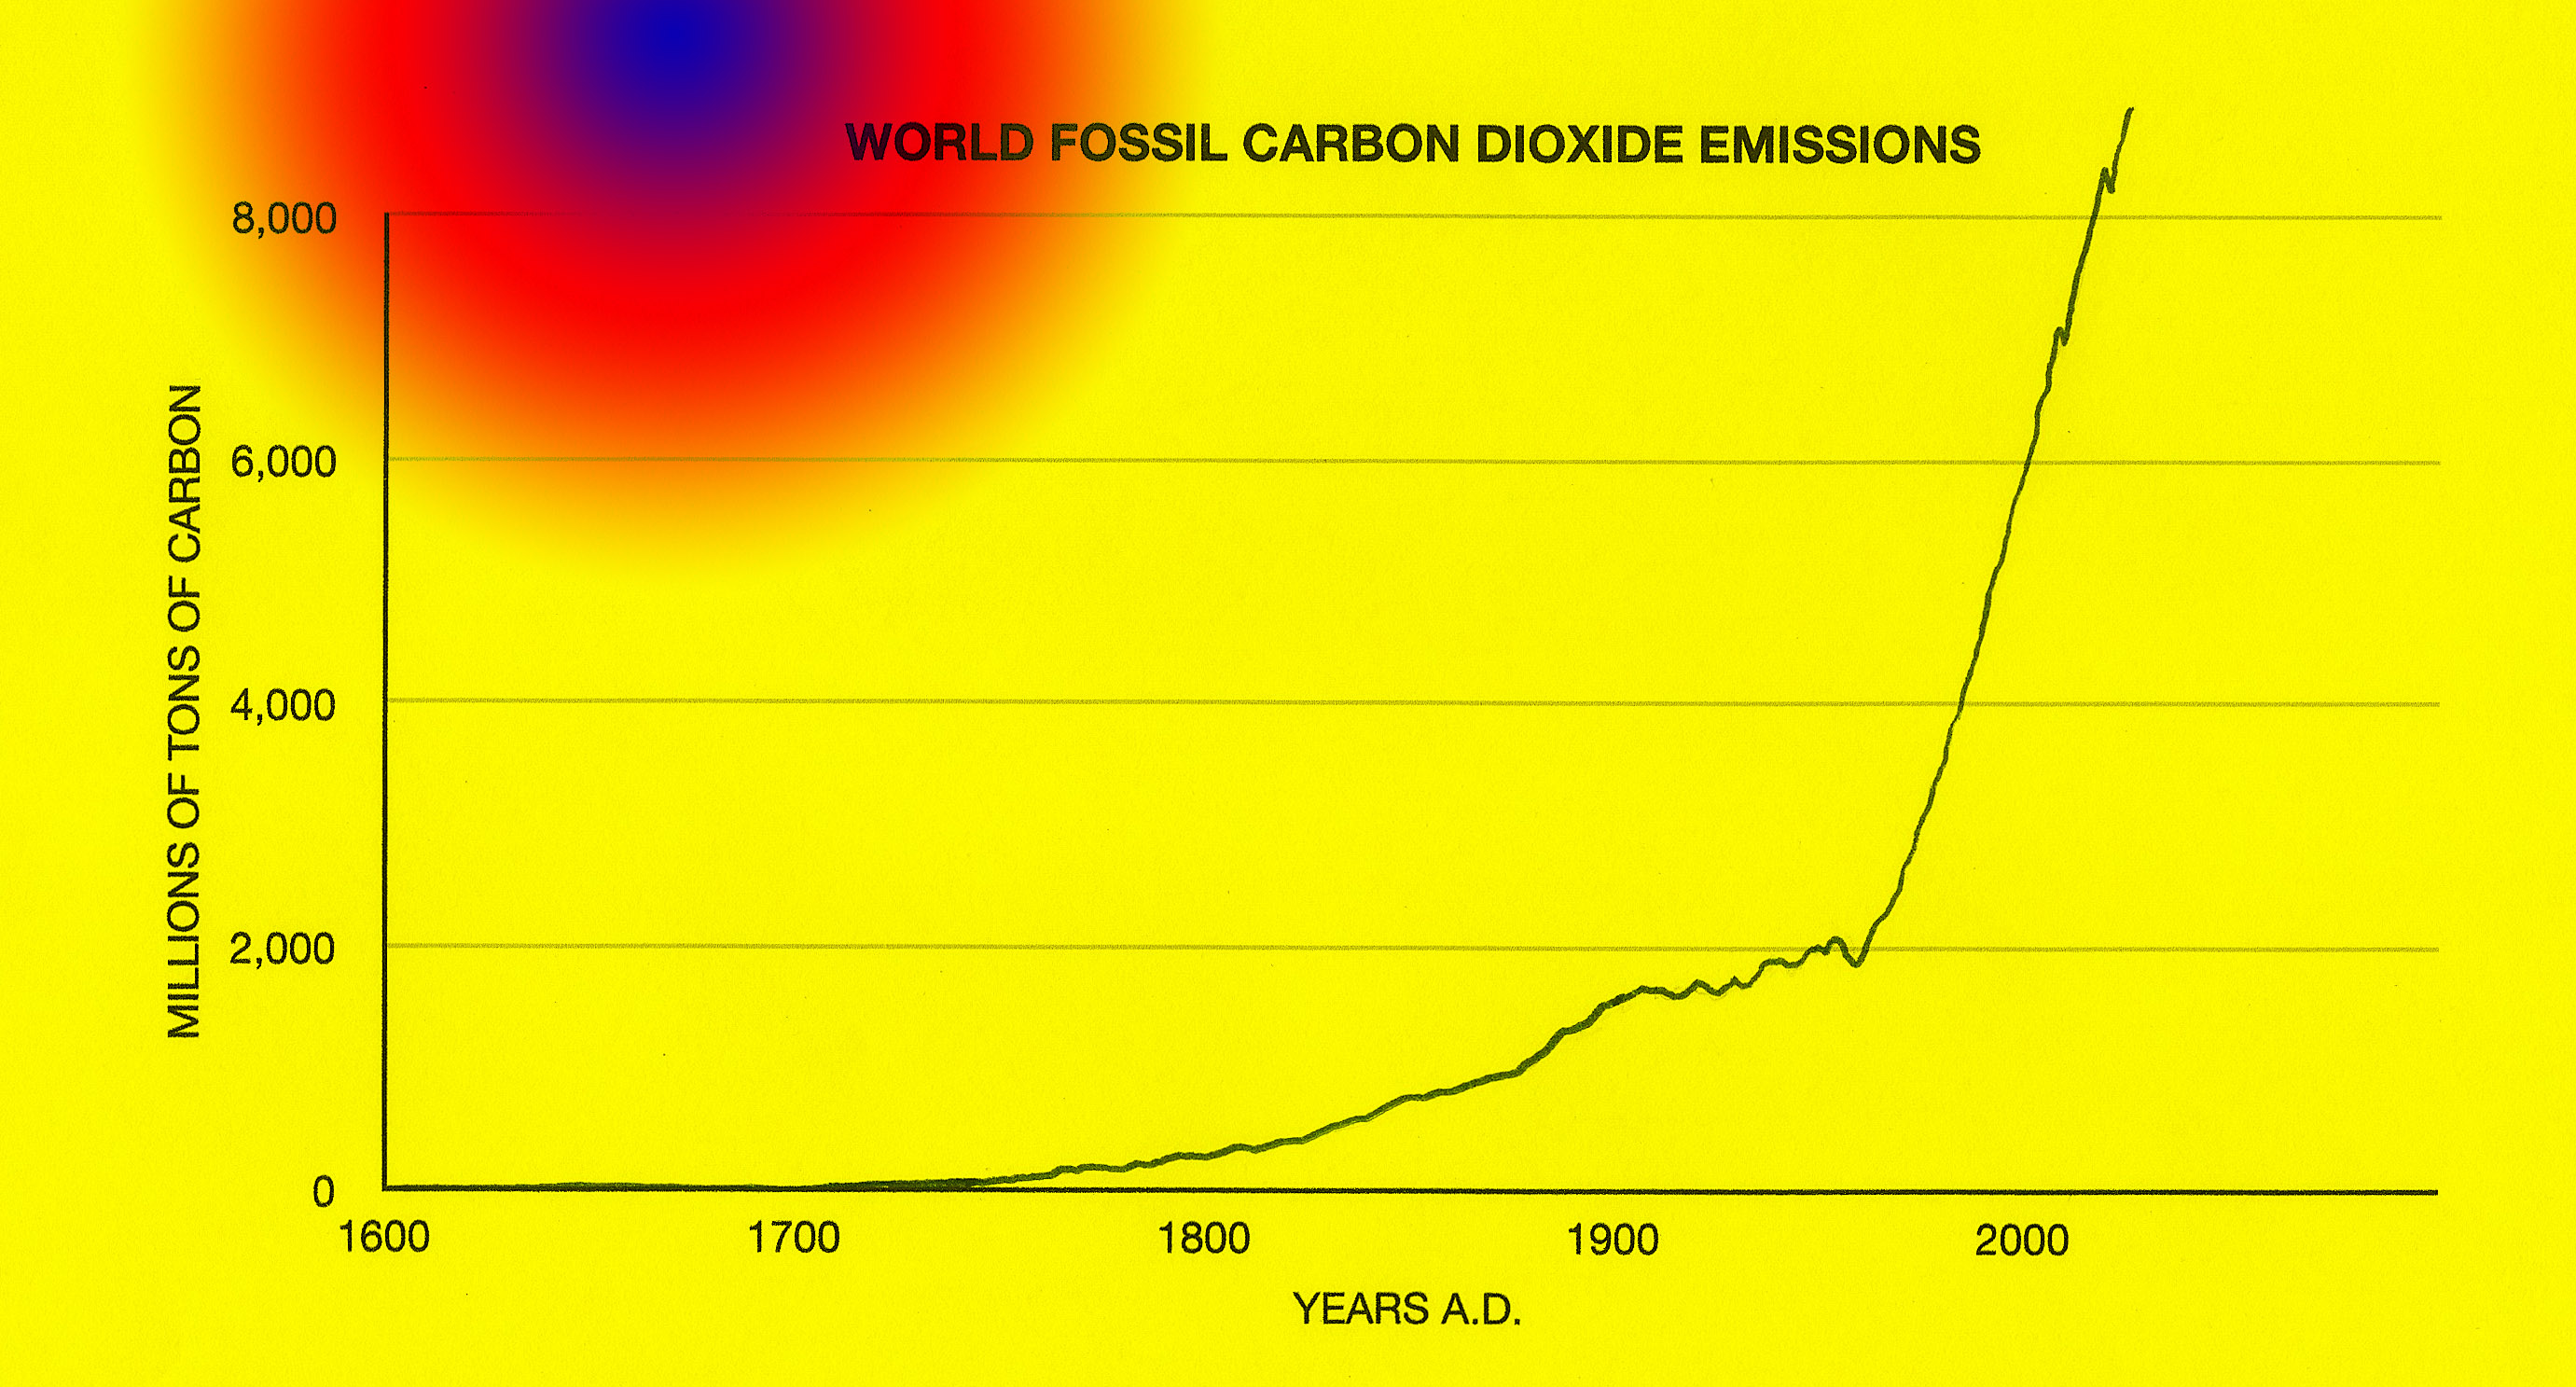 Not surprisingly Carbon dioxide emissions due to the burning of fossil fuels also follows an exponential line.